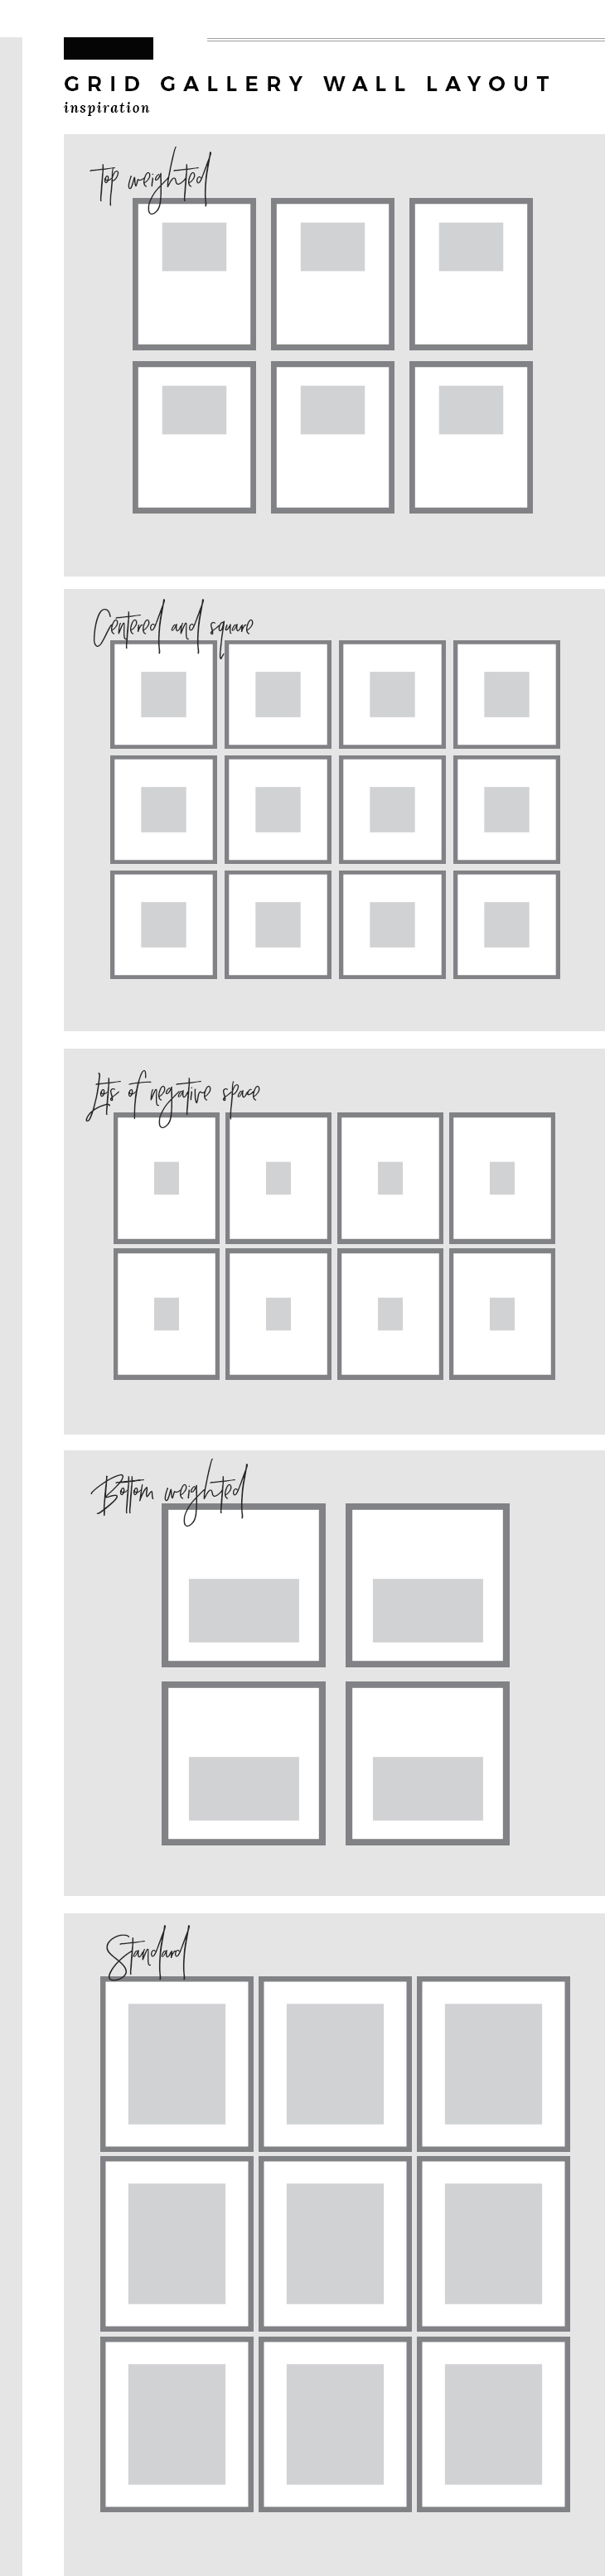 Grid Gallery Wall Layouts